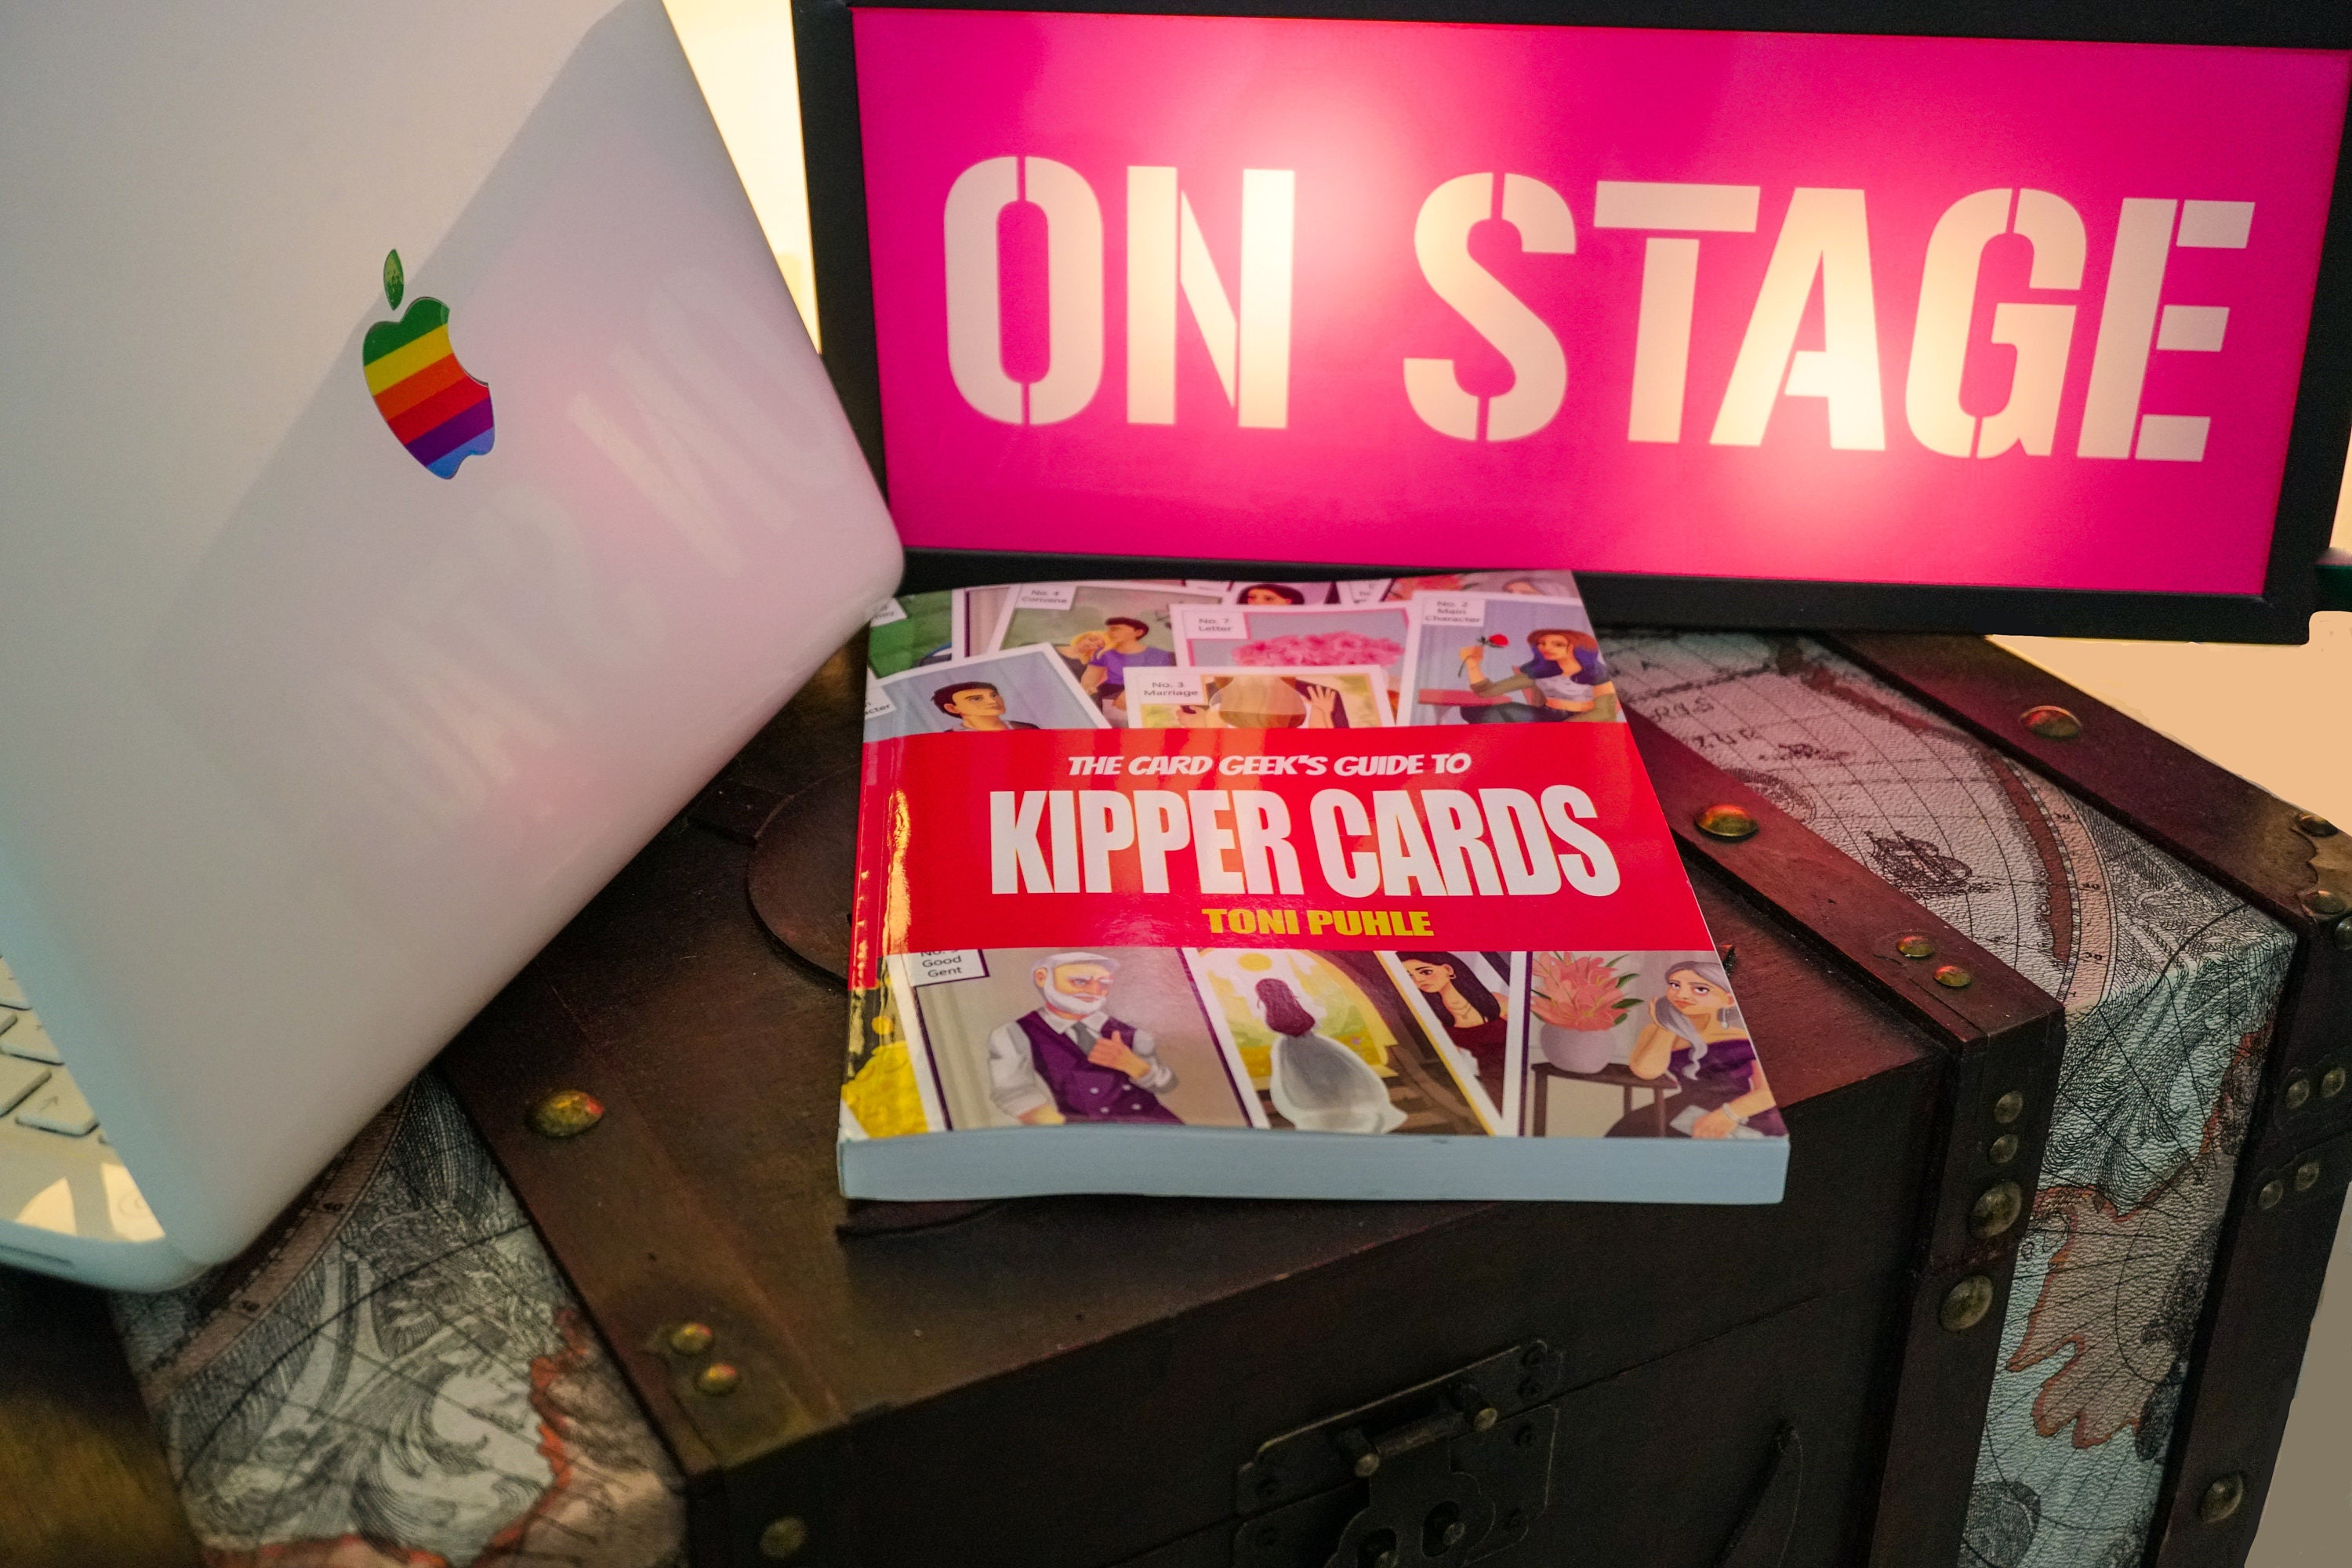 The Card Geek\'s Guide to Kipper Cards Available again by